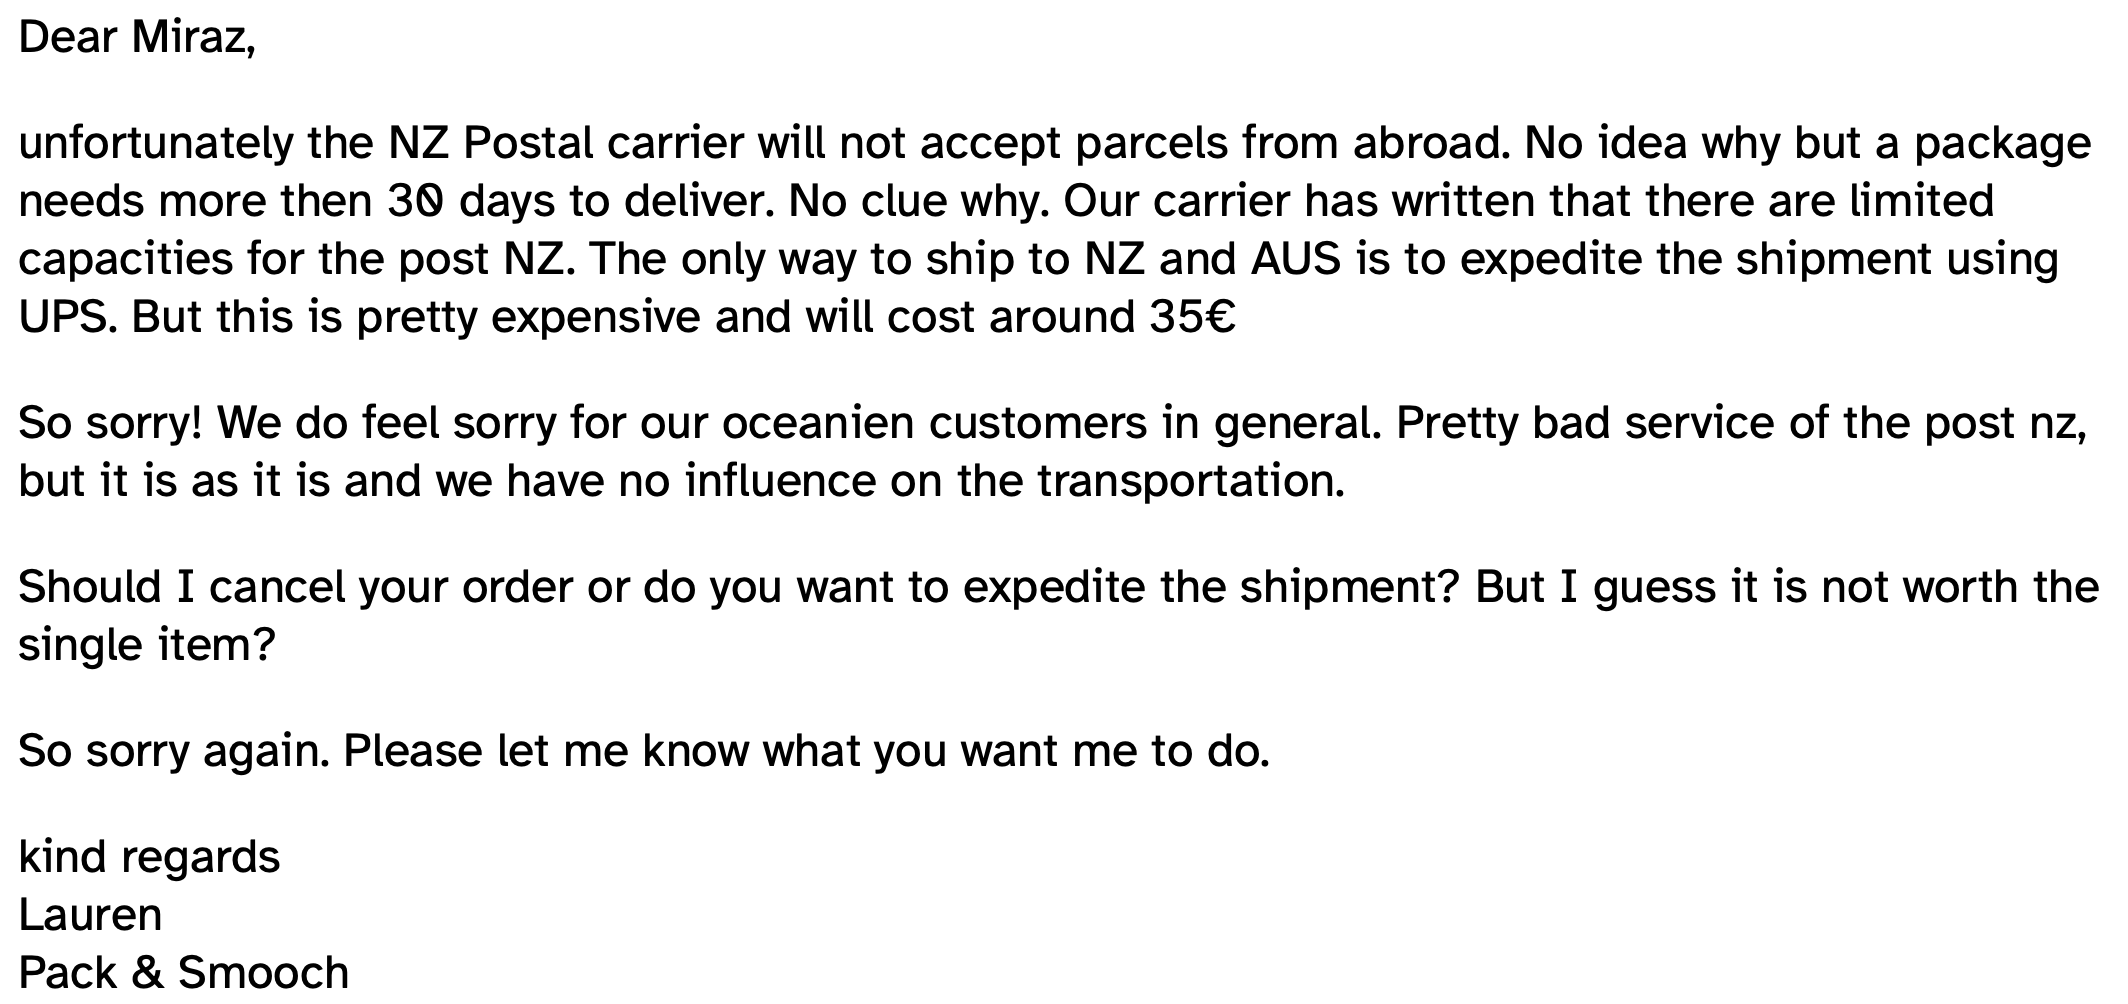 Email advising shipping not possible.